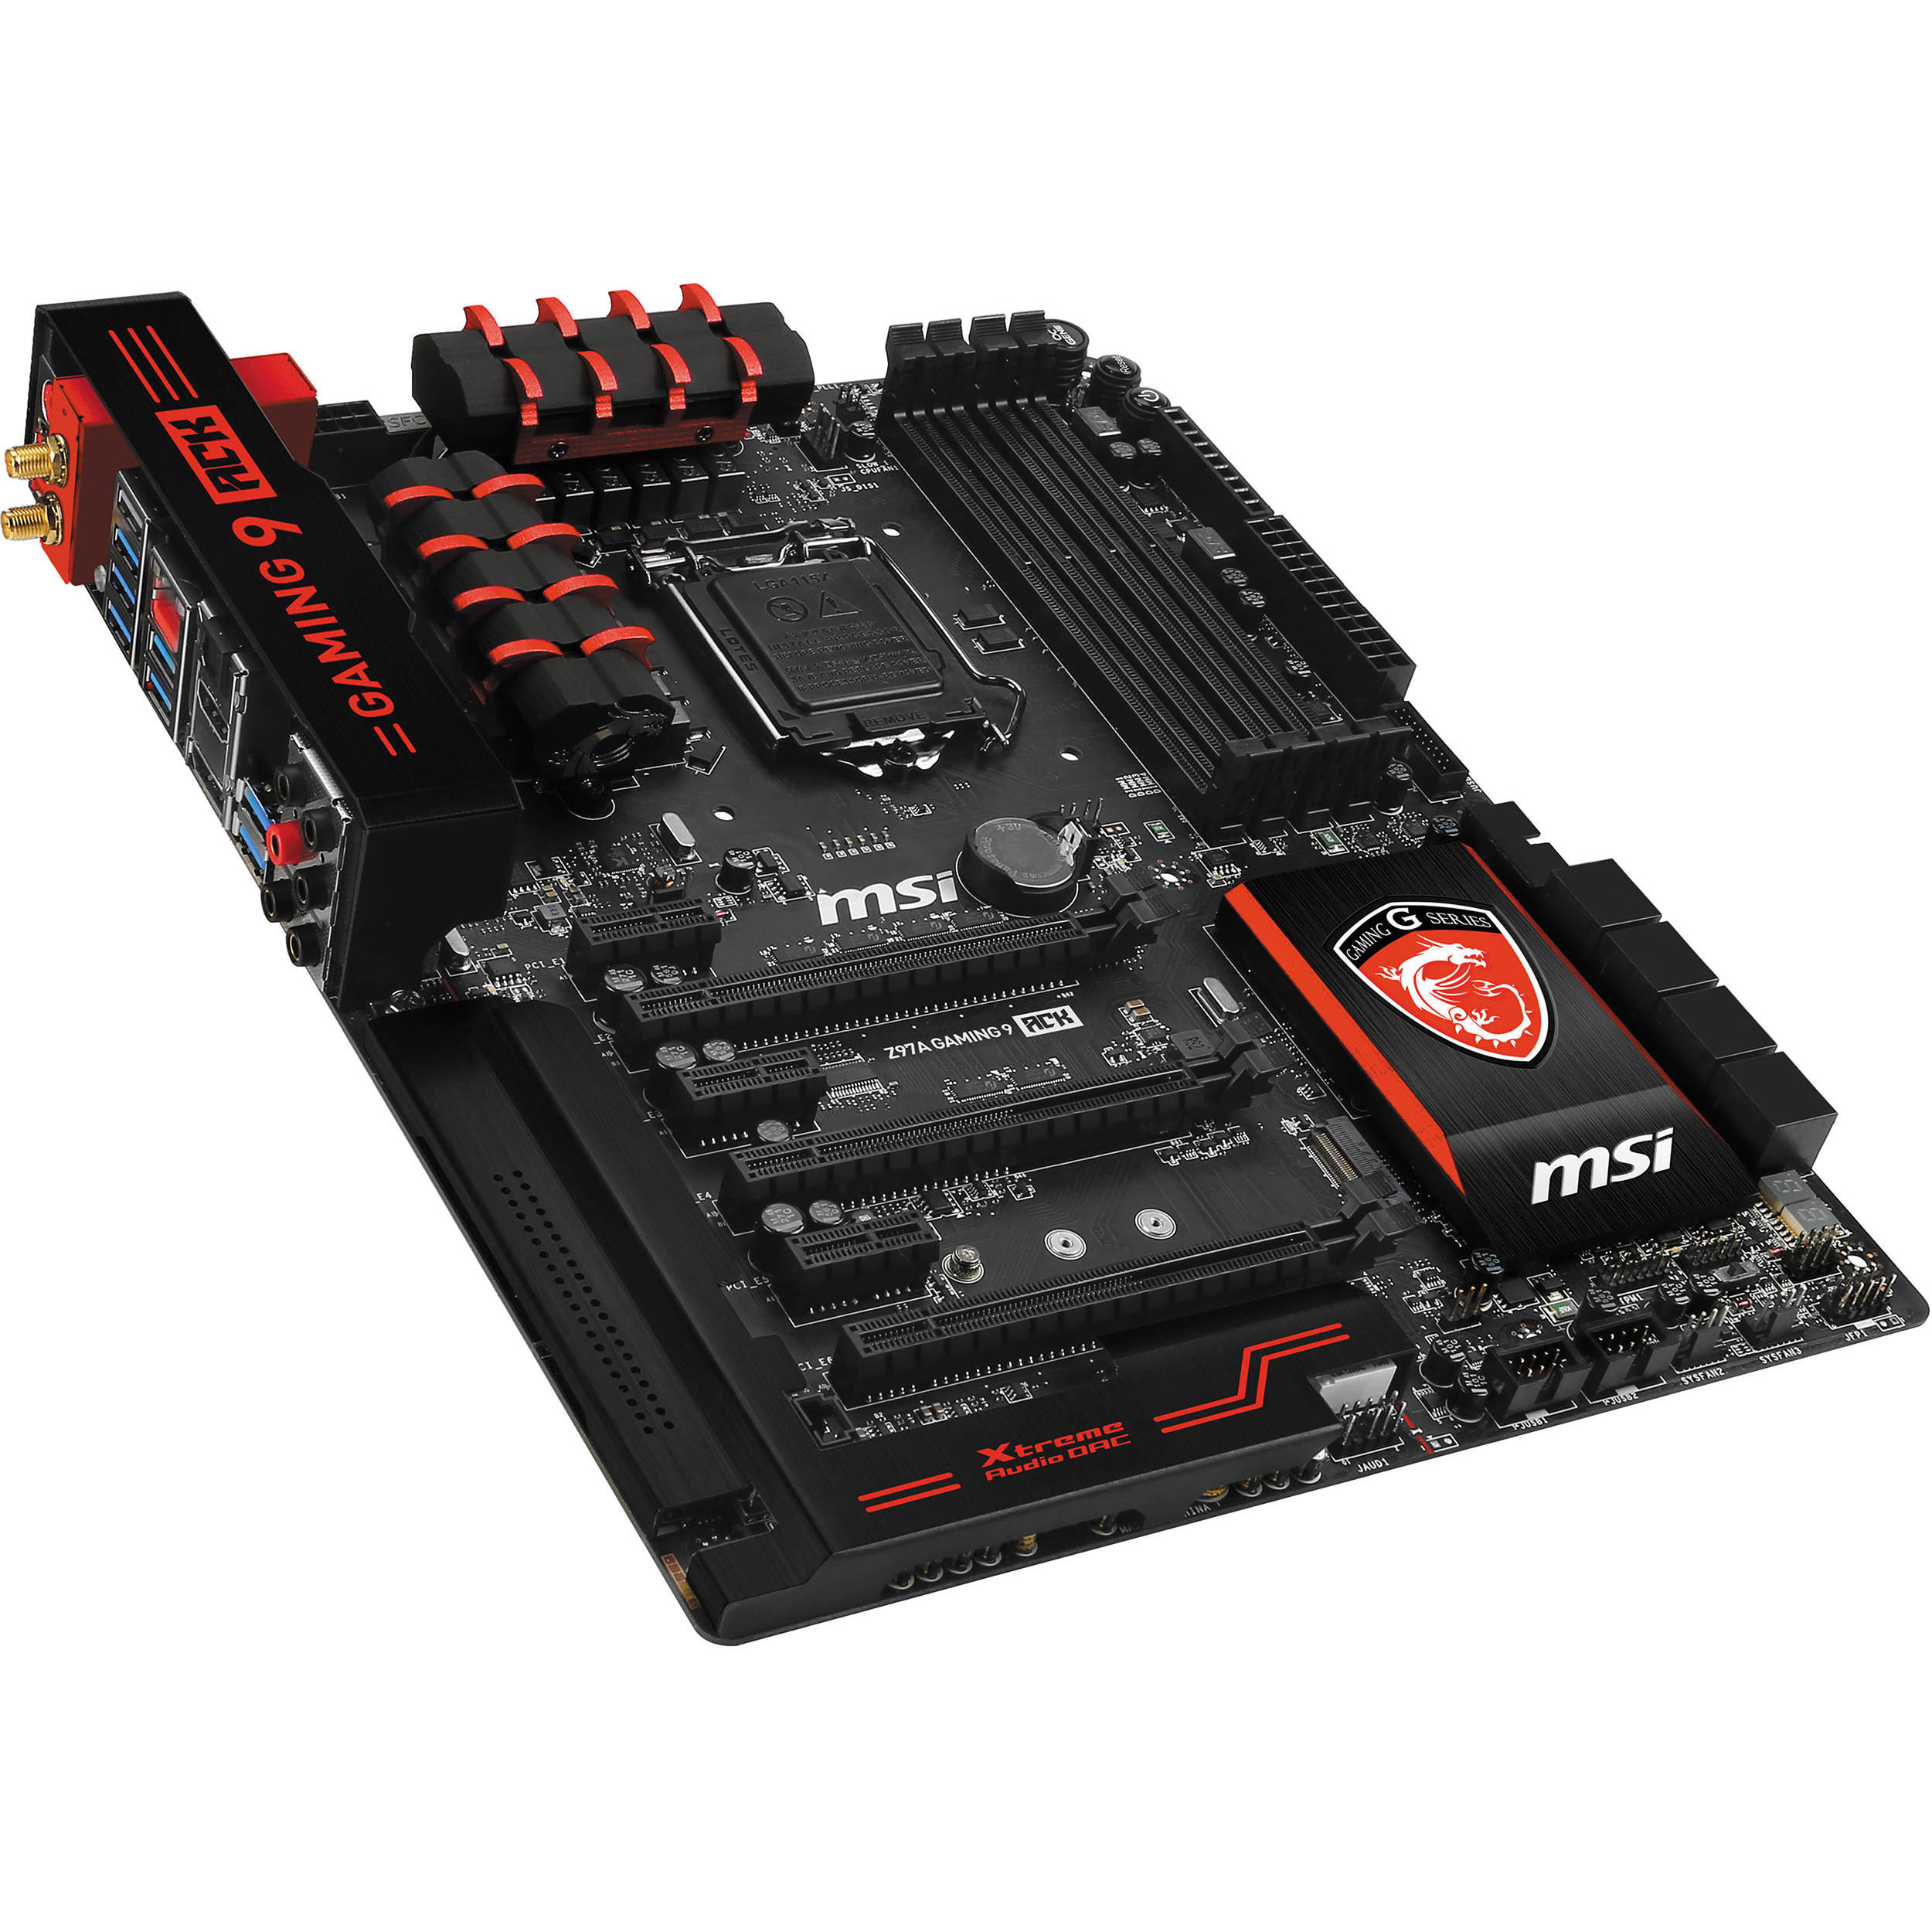 MSI Z97A Gaming 9 ACK C-Media Audio Drivers (2019)